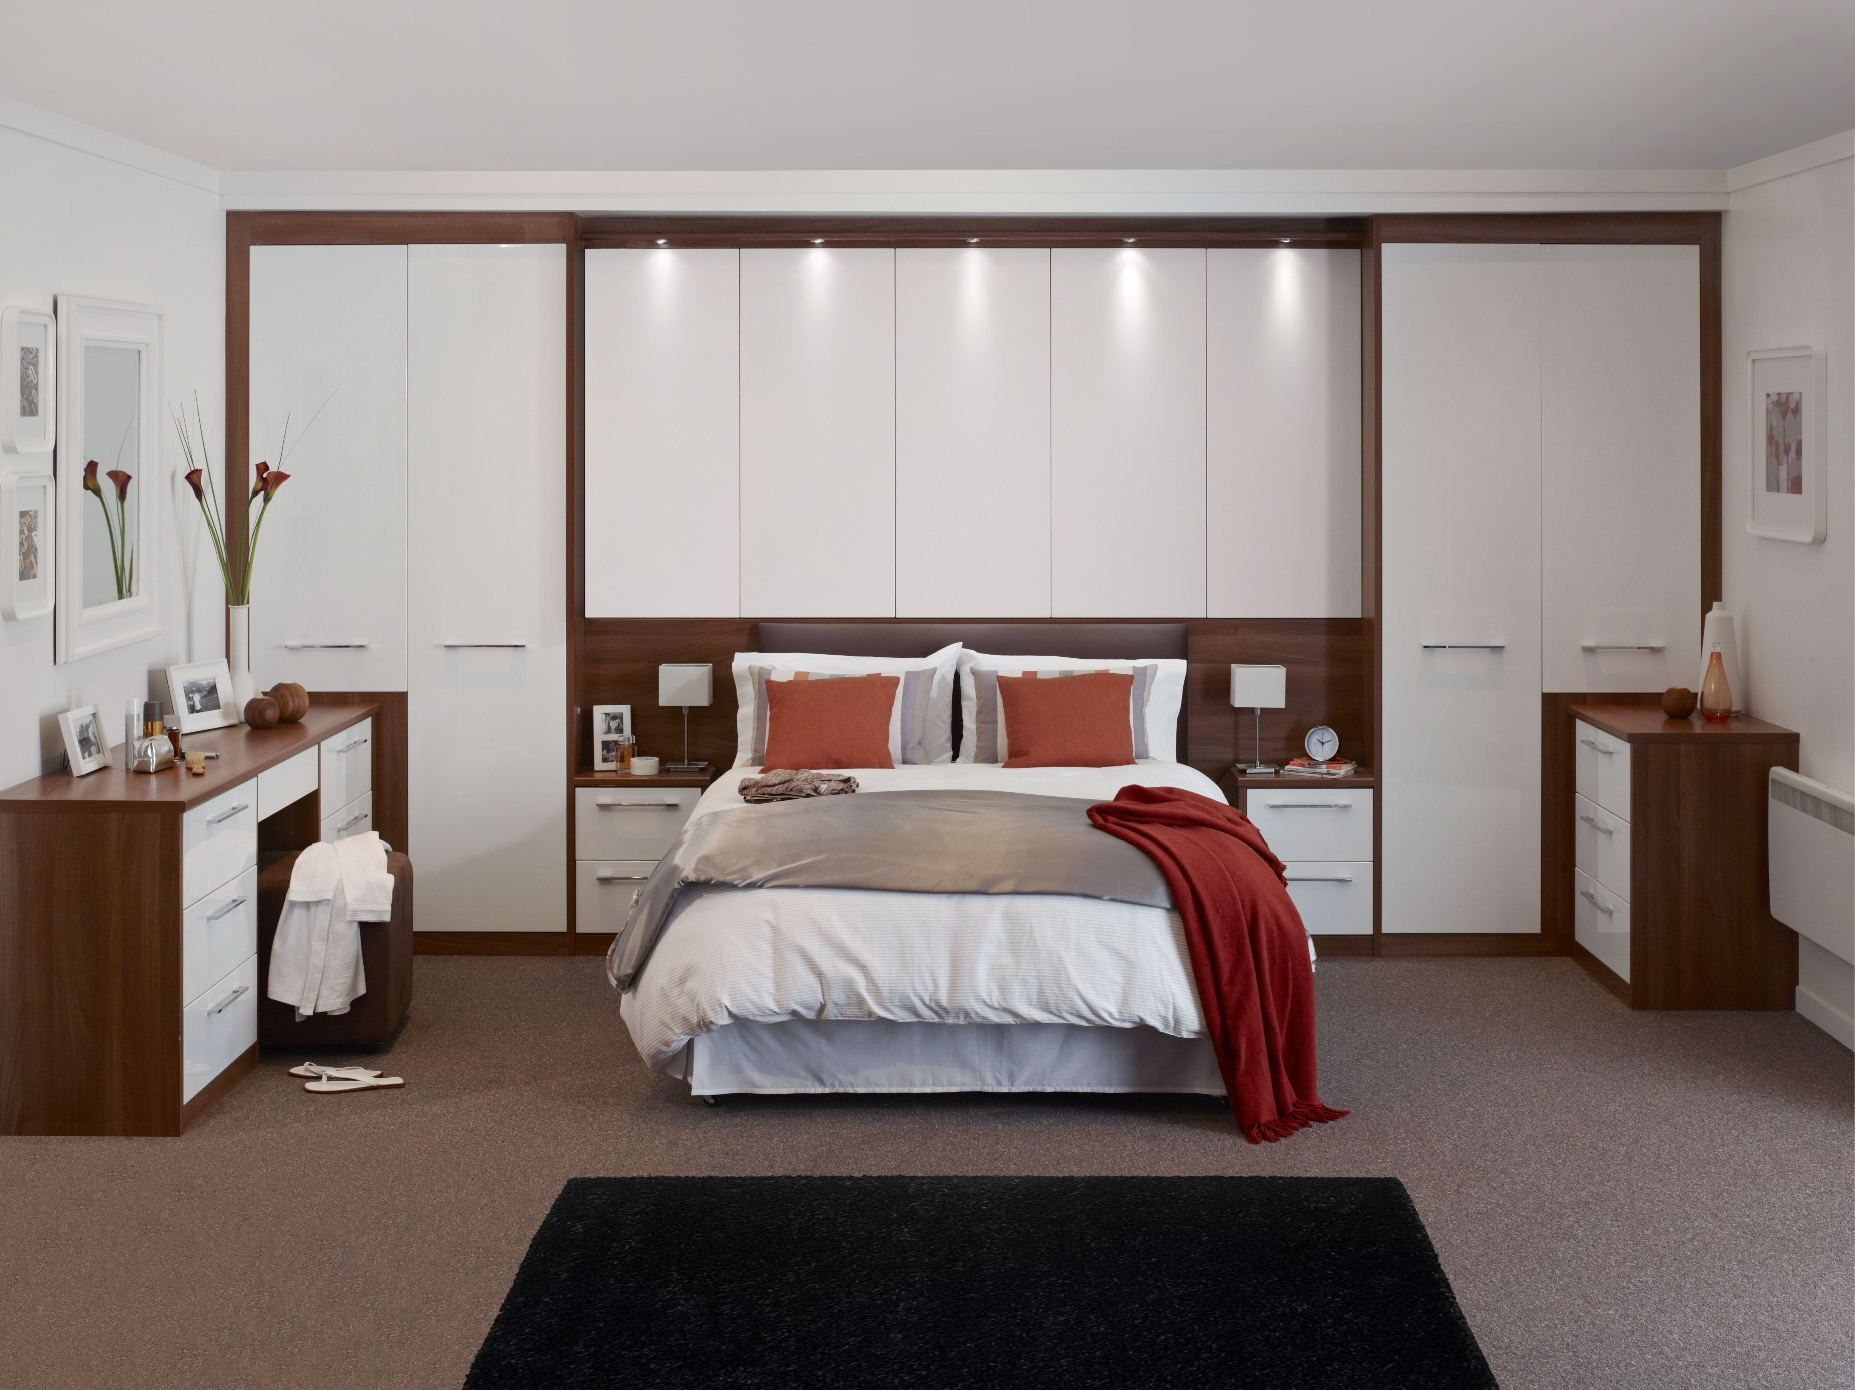 22 Fitted Bedroom Wardrobes Design To Create A Wow Moment Fitted